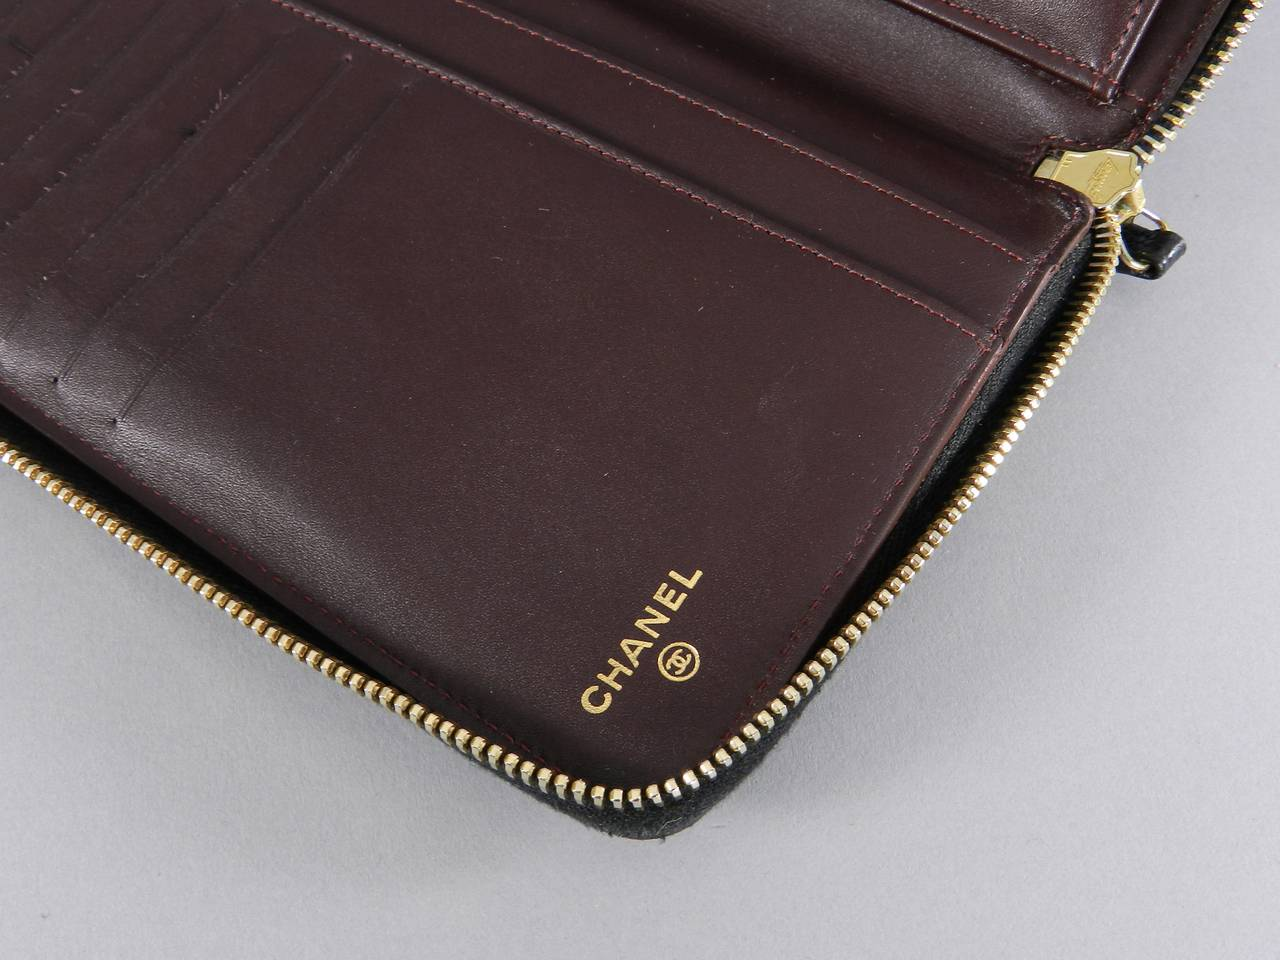 c227e366a140 Chanel Large Zip Wallet - Best Photo Wallet Justiceforkenny.Org